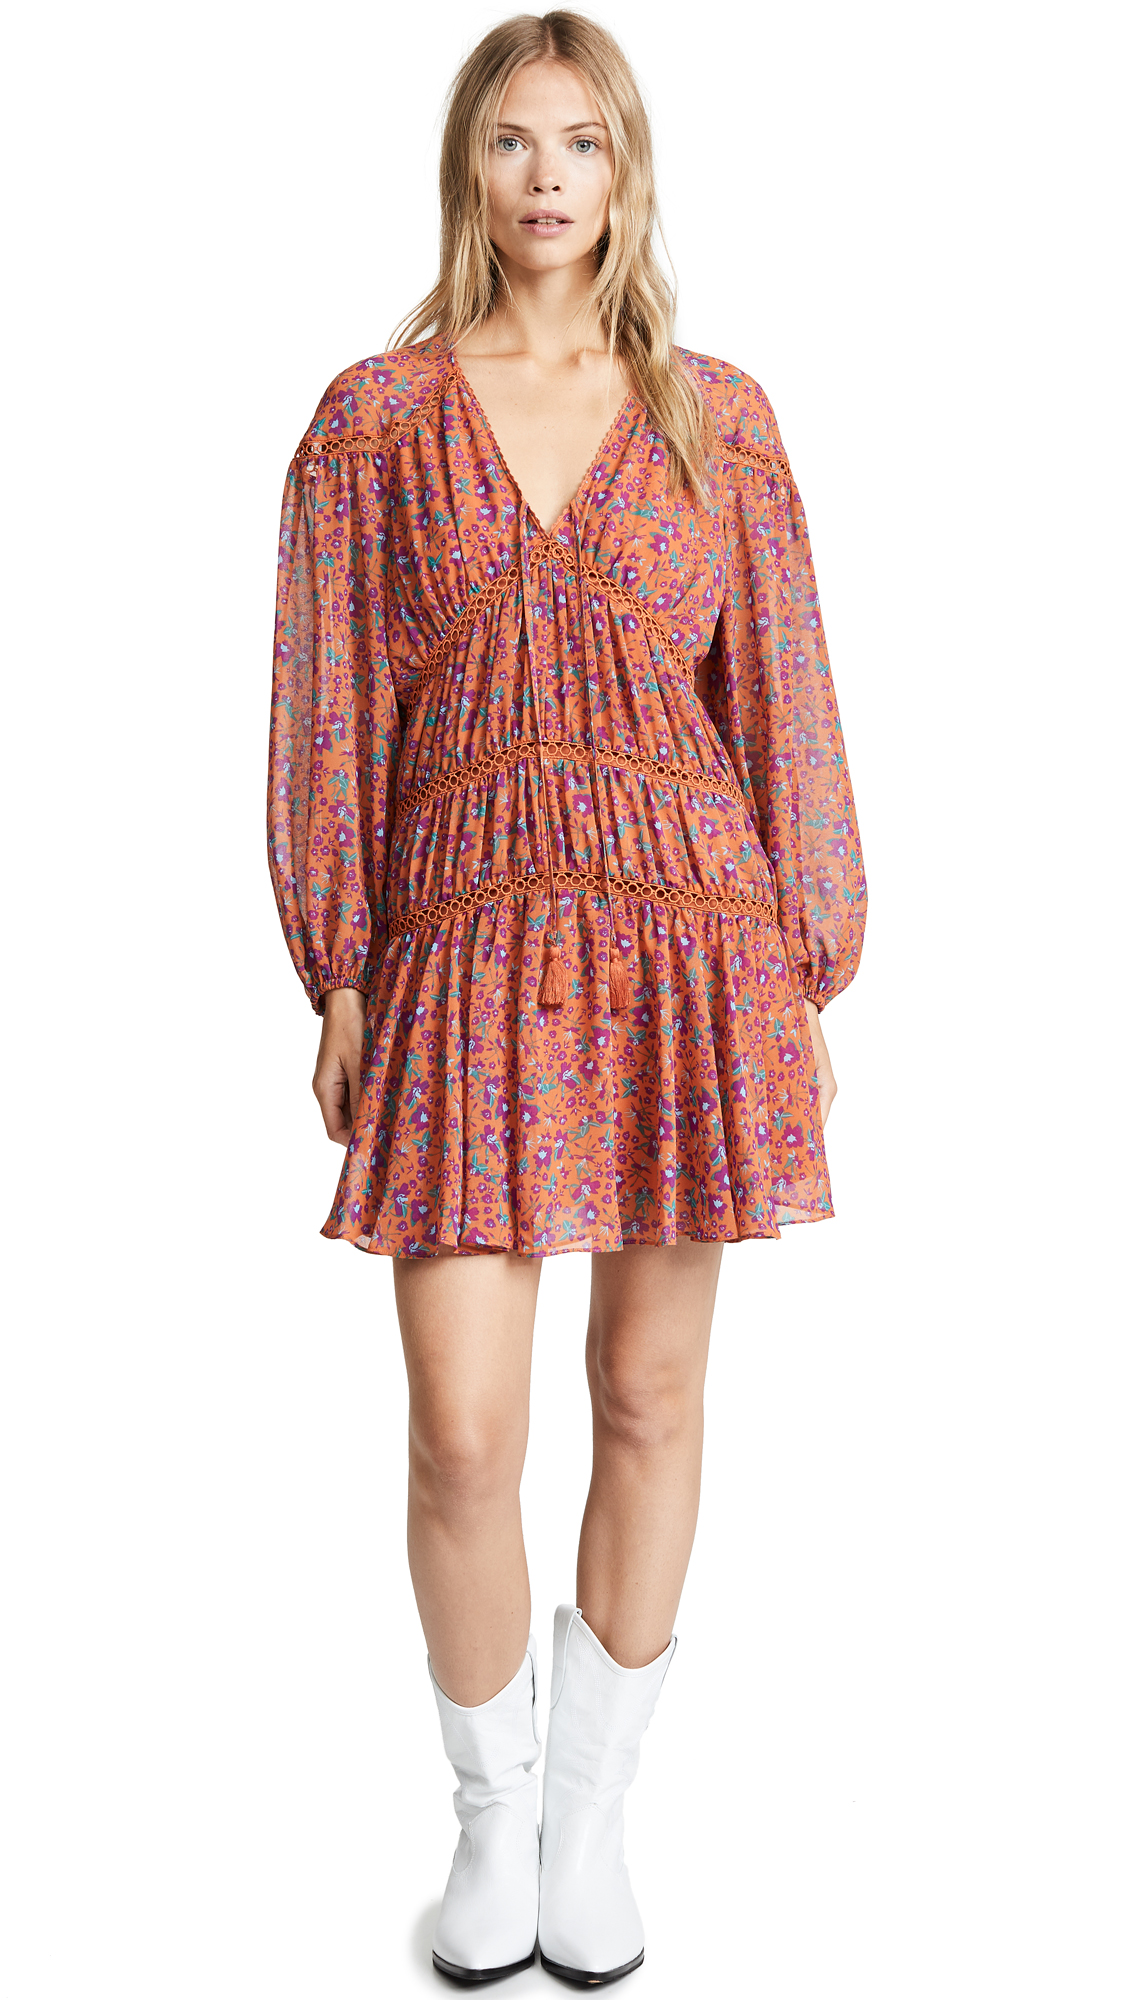 Rebecca Minkoff Caden Dress In Rust Multi